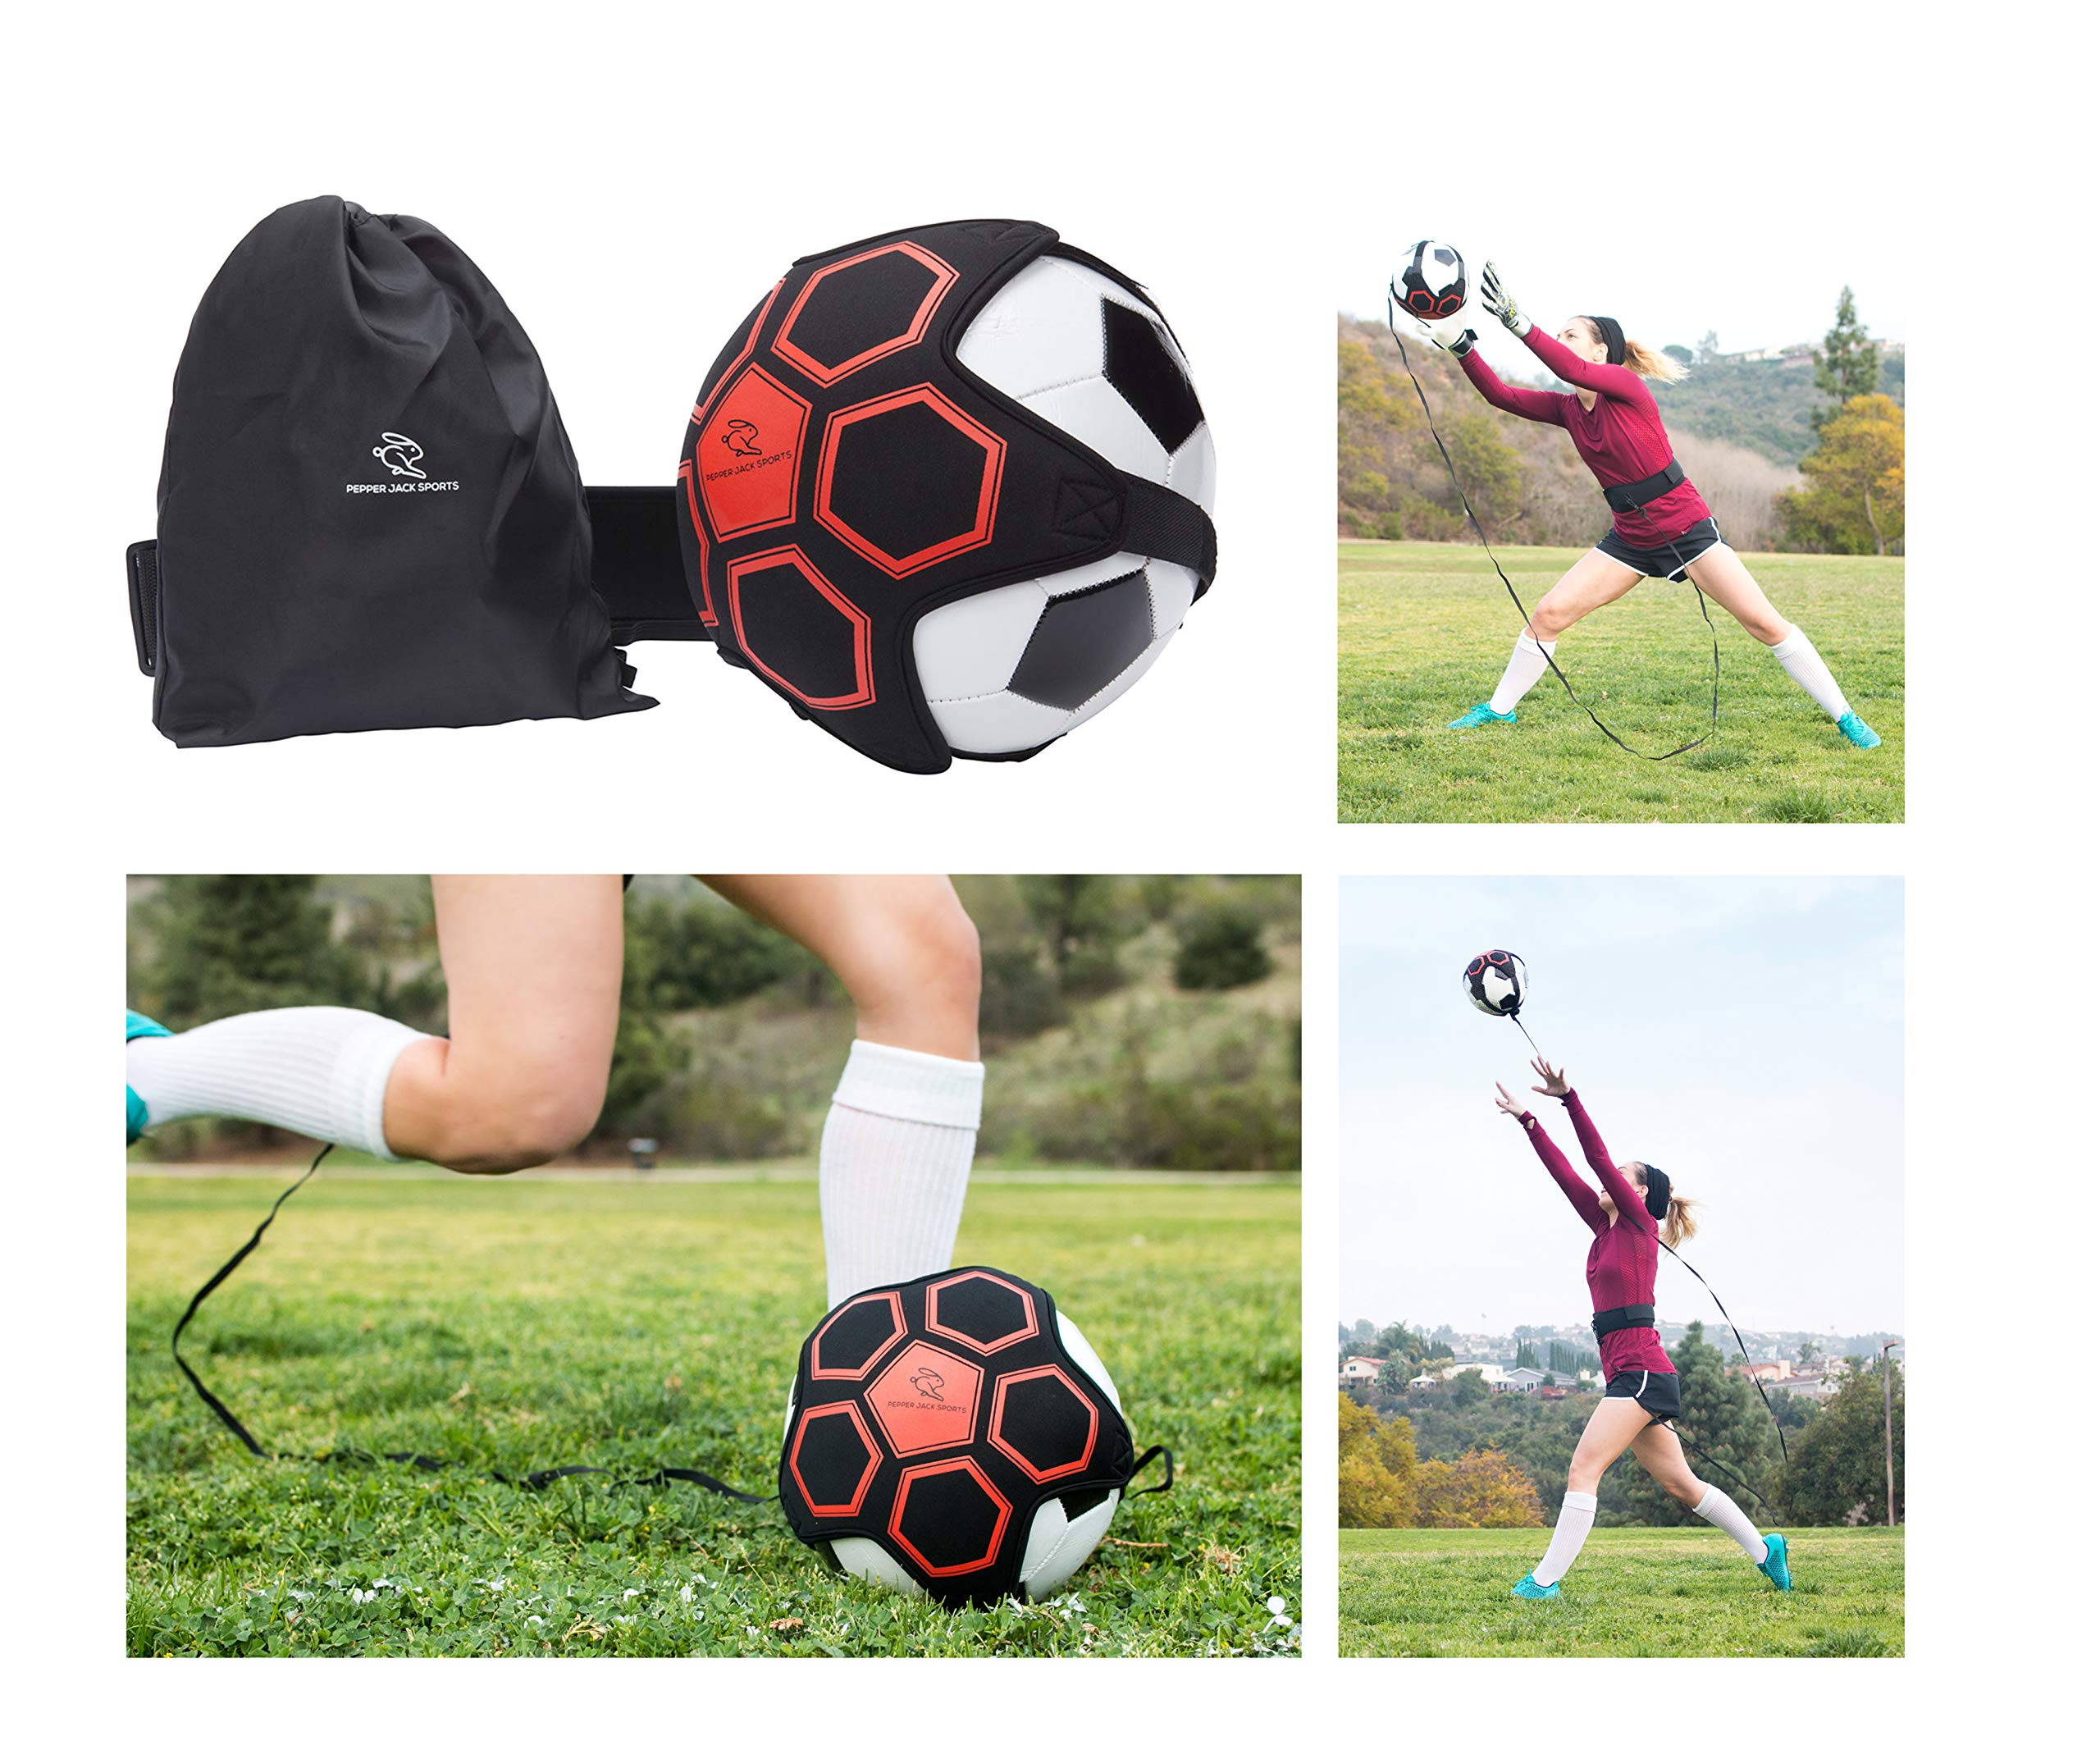 Pepper Jack Sports - Hands Free Solo Soccer Trainer | Indoor & Outdoor Self Practice with Adjustable Waist Belt for Kids & Adults | Boost Control Skills & Accuracy | Bonus Carry Bag